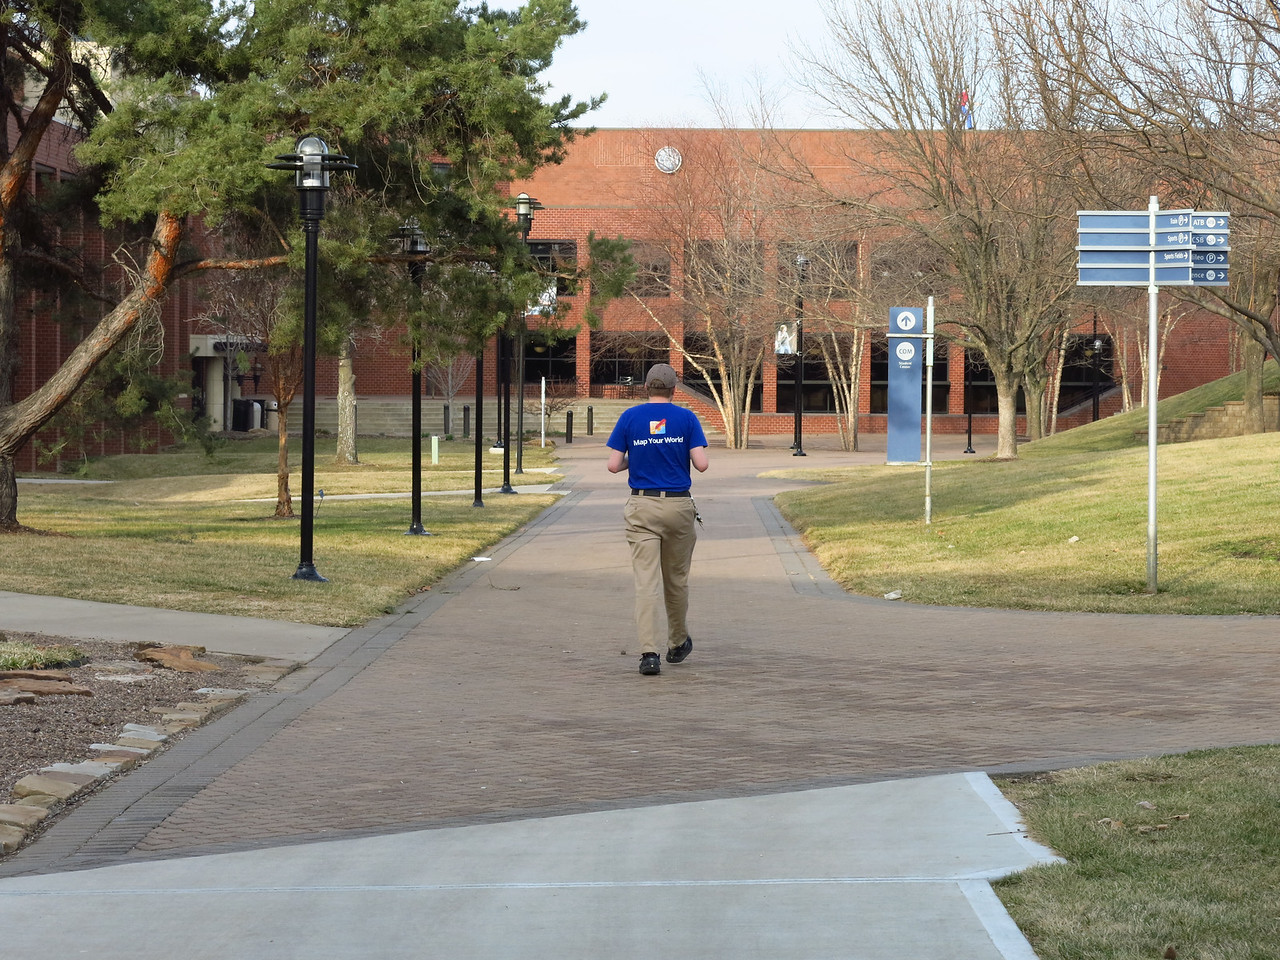 Nathan is striding down the main walkway of the central campus at JCCC.  On Friday, March 15, the high was 78 degrees.  On Sunday, March 17, it was snowing lightly.